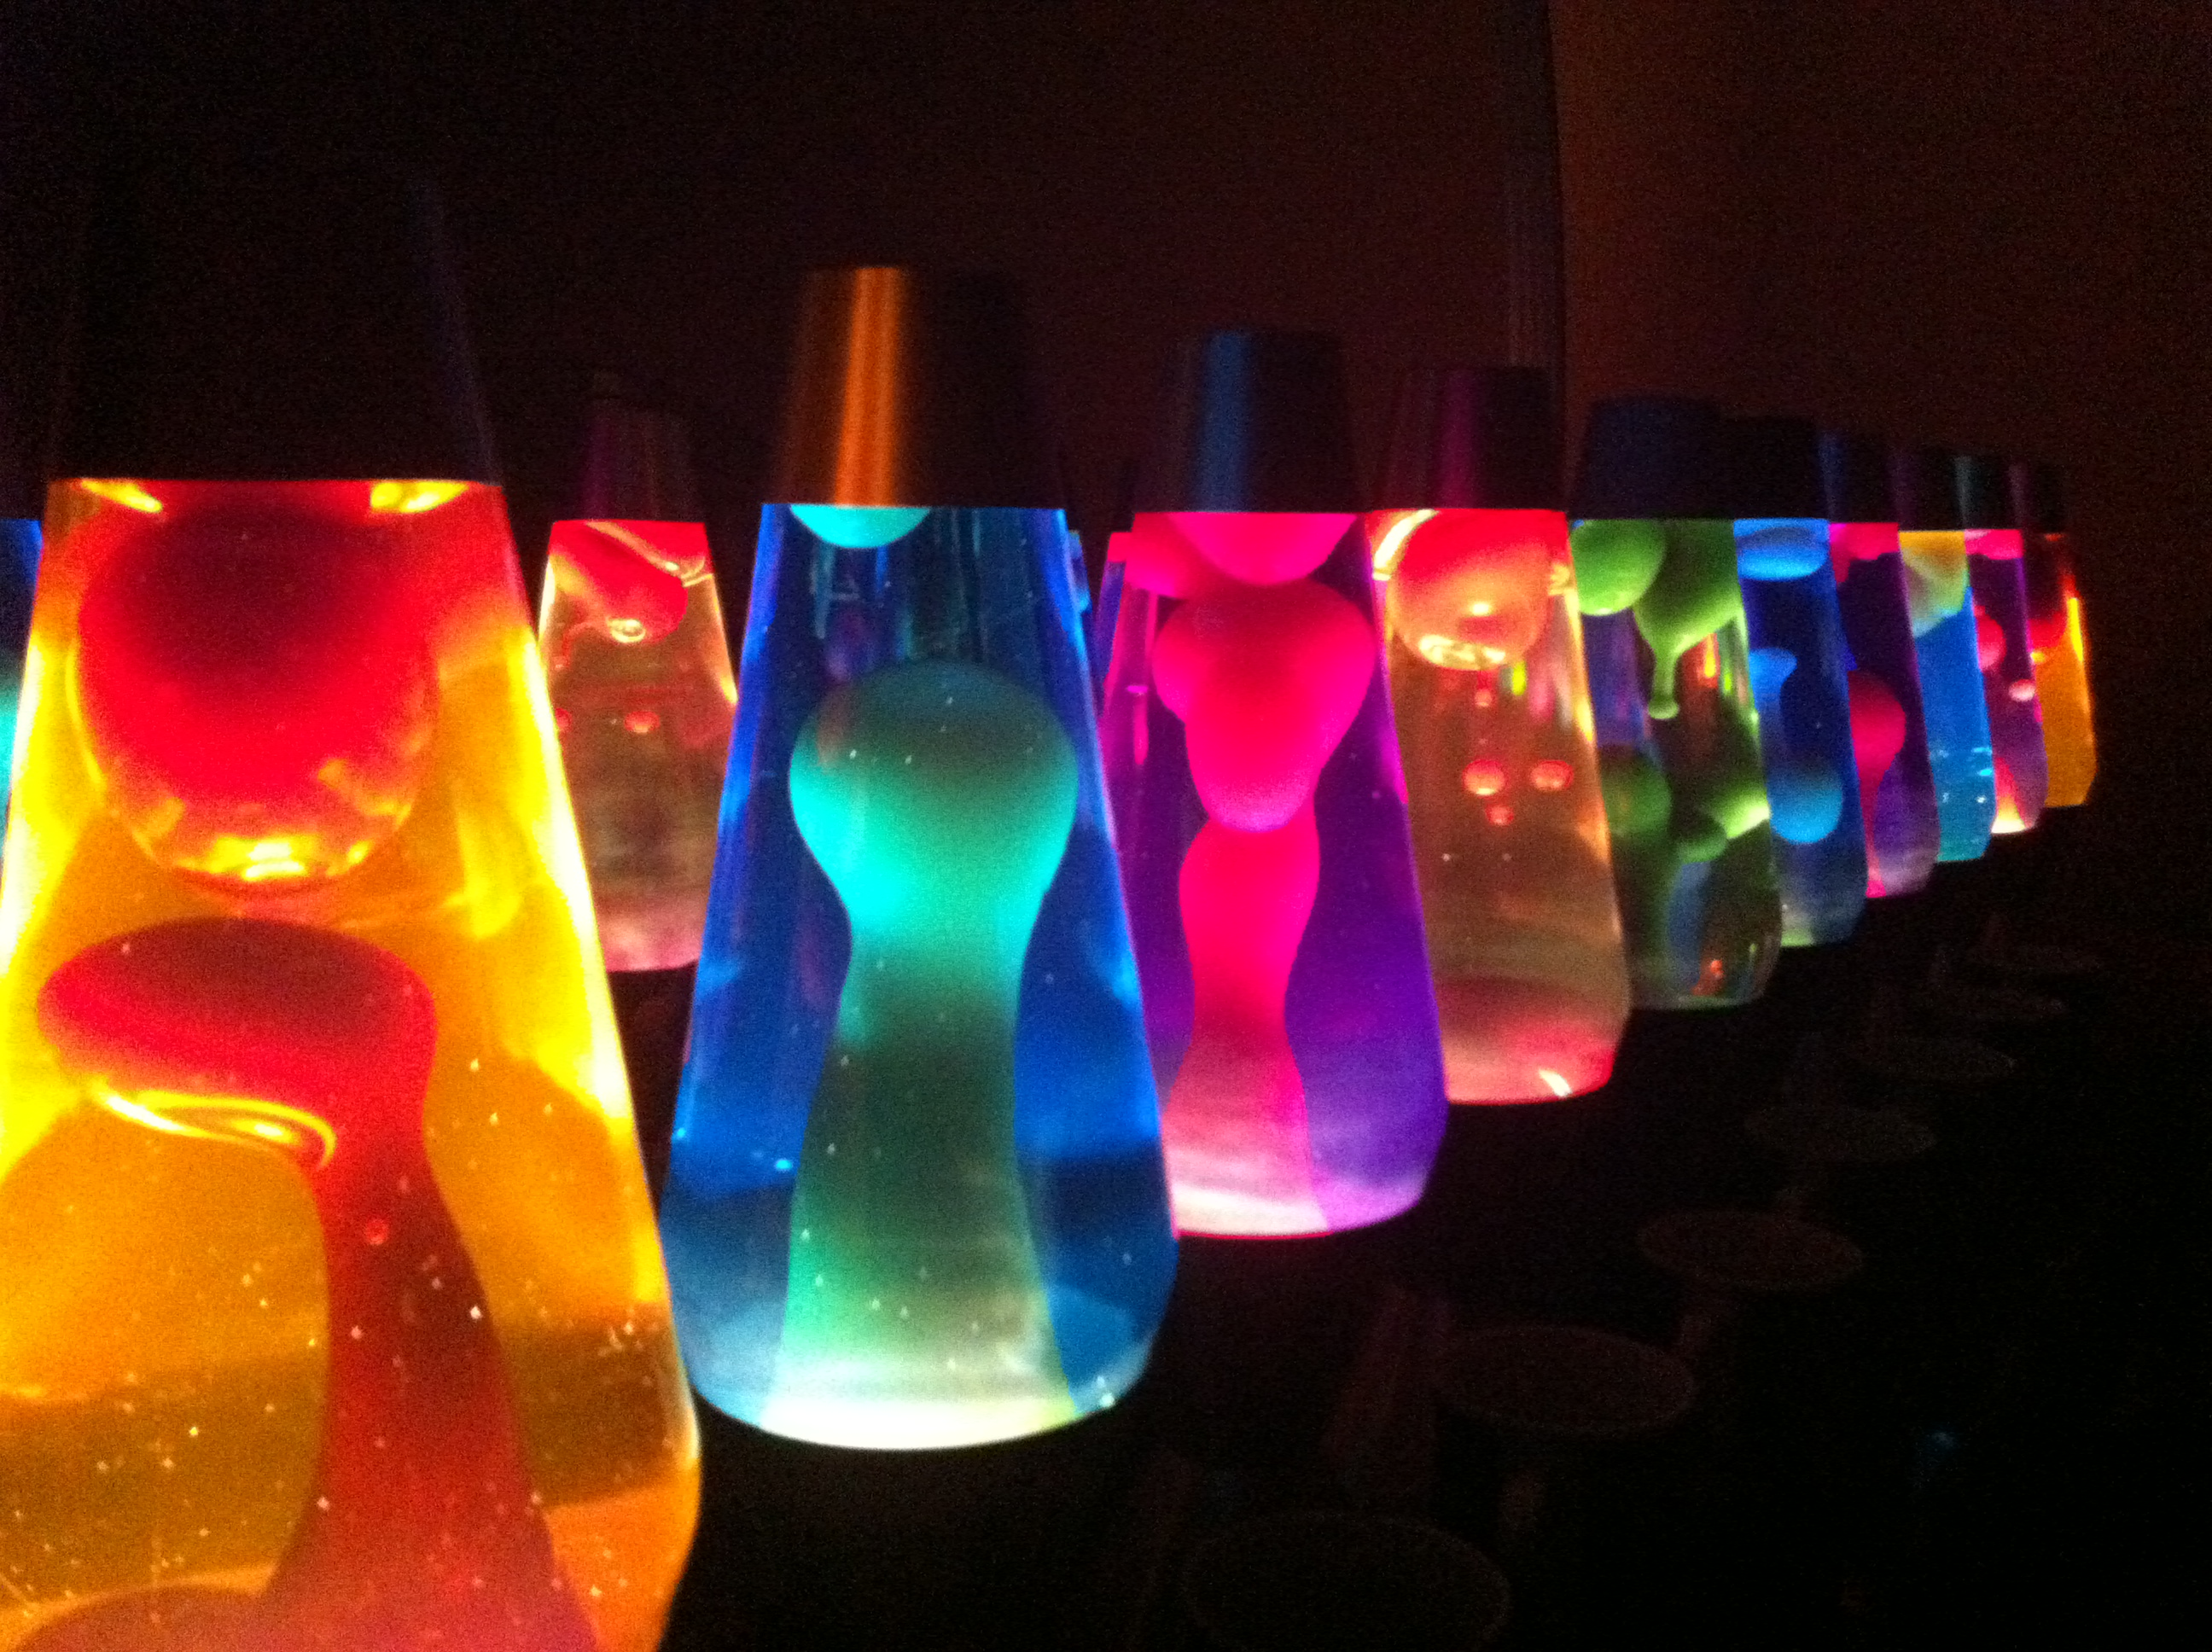 Lava Lamp Image Gif Lamps Are So Beautiful